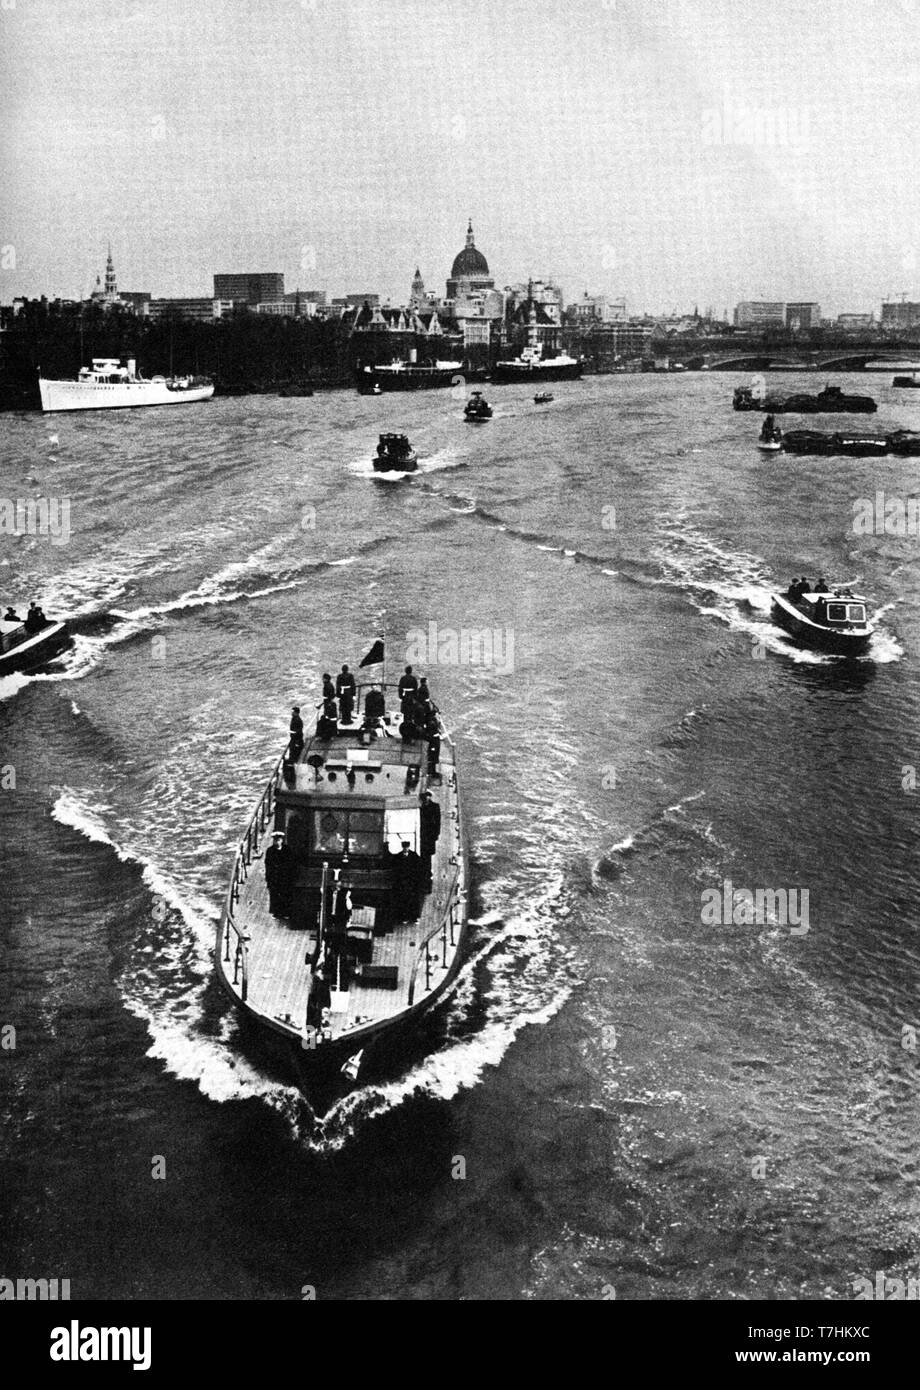 Winston Churchill's coffin transported across the river Thames to Waterloo Station for eventual burial in Bladon, adjacent to Blenheim Palace. - Stock Image